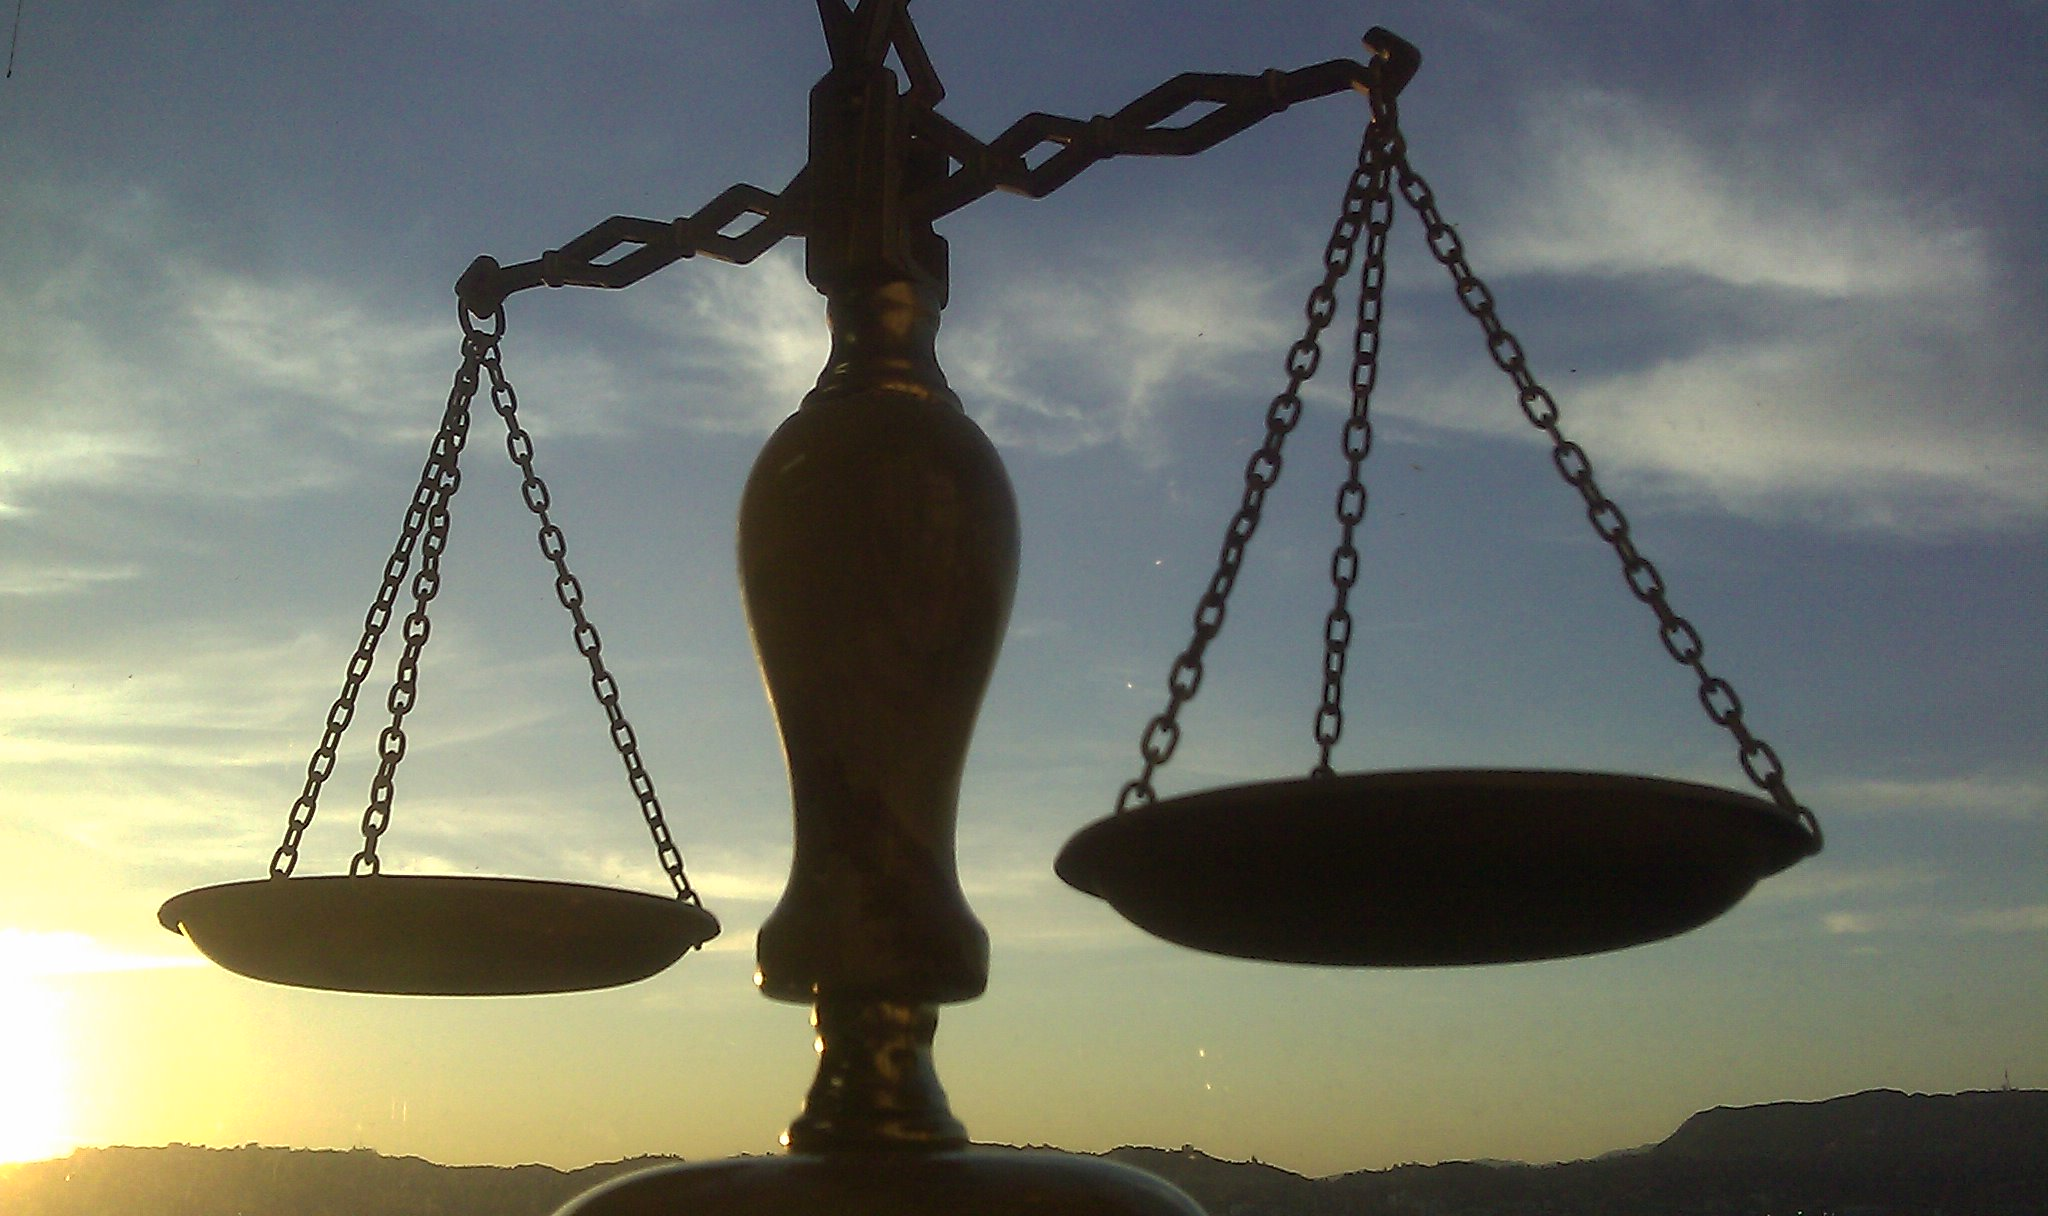 legal vs justice The juvenile justice system follows a psychological casework approach, taking into account a detailed assessment of the youth's history in order to meet his or her specific needs the juvenile offender faces a hearing, rather than a trial, which incorporates his social history as well as legal factors defendants in the criminal justice system are put on trial, which is based largely on legal.